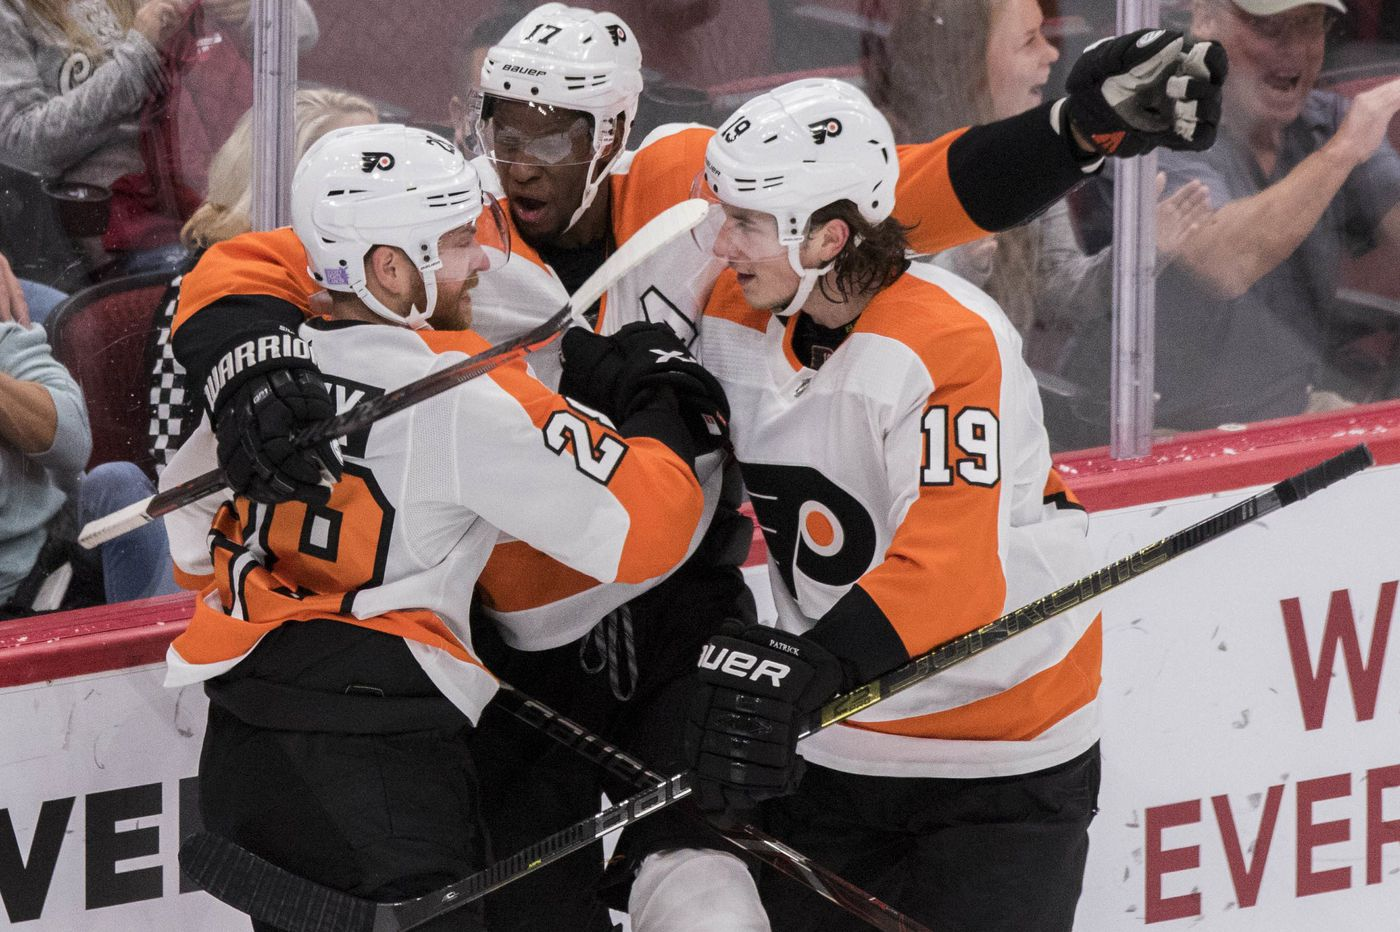 Five observations from Flyers' impressive road trip: Balanced lines, gritty play from Folin, Pickard saves the day